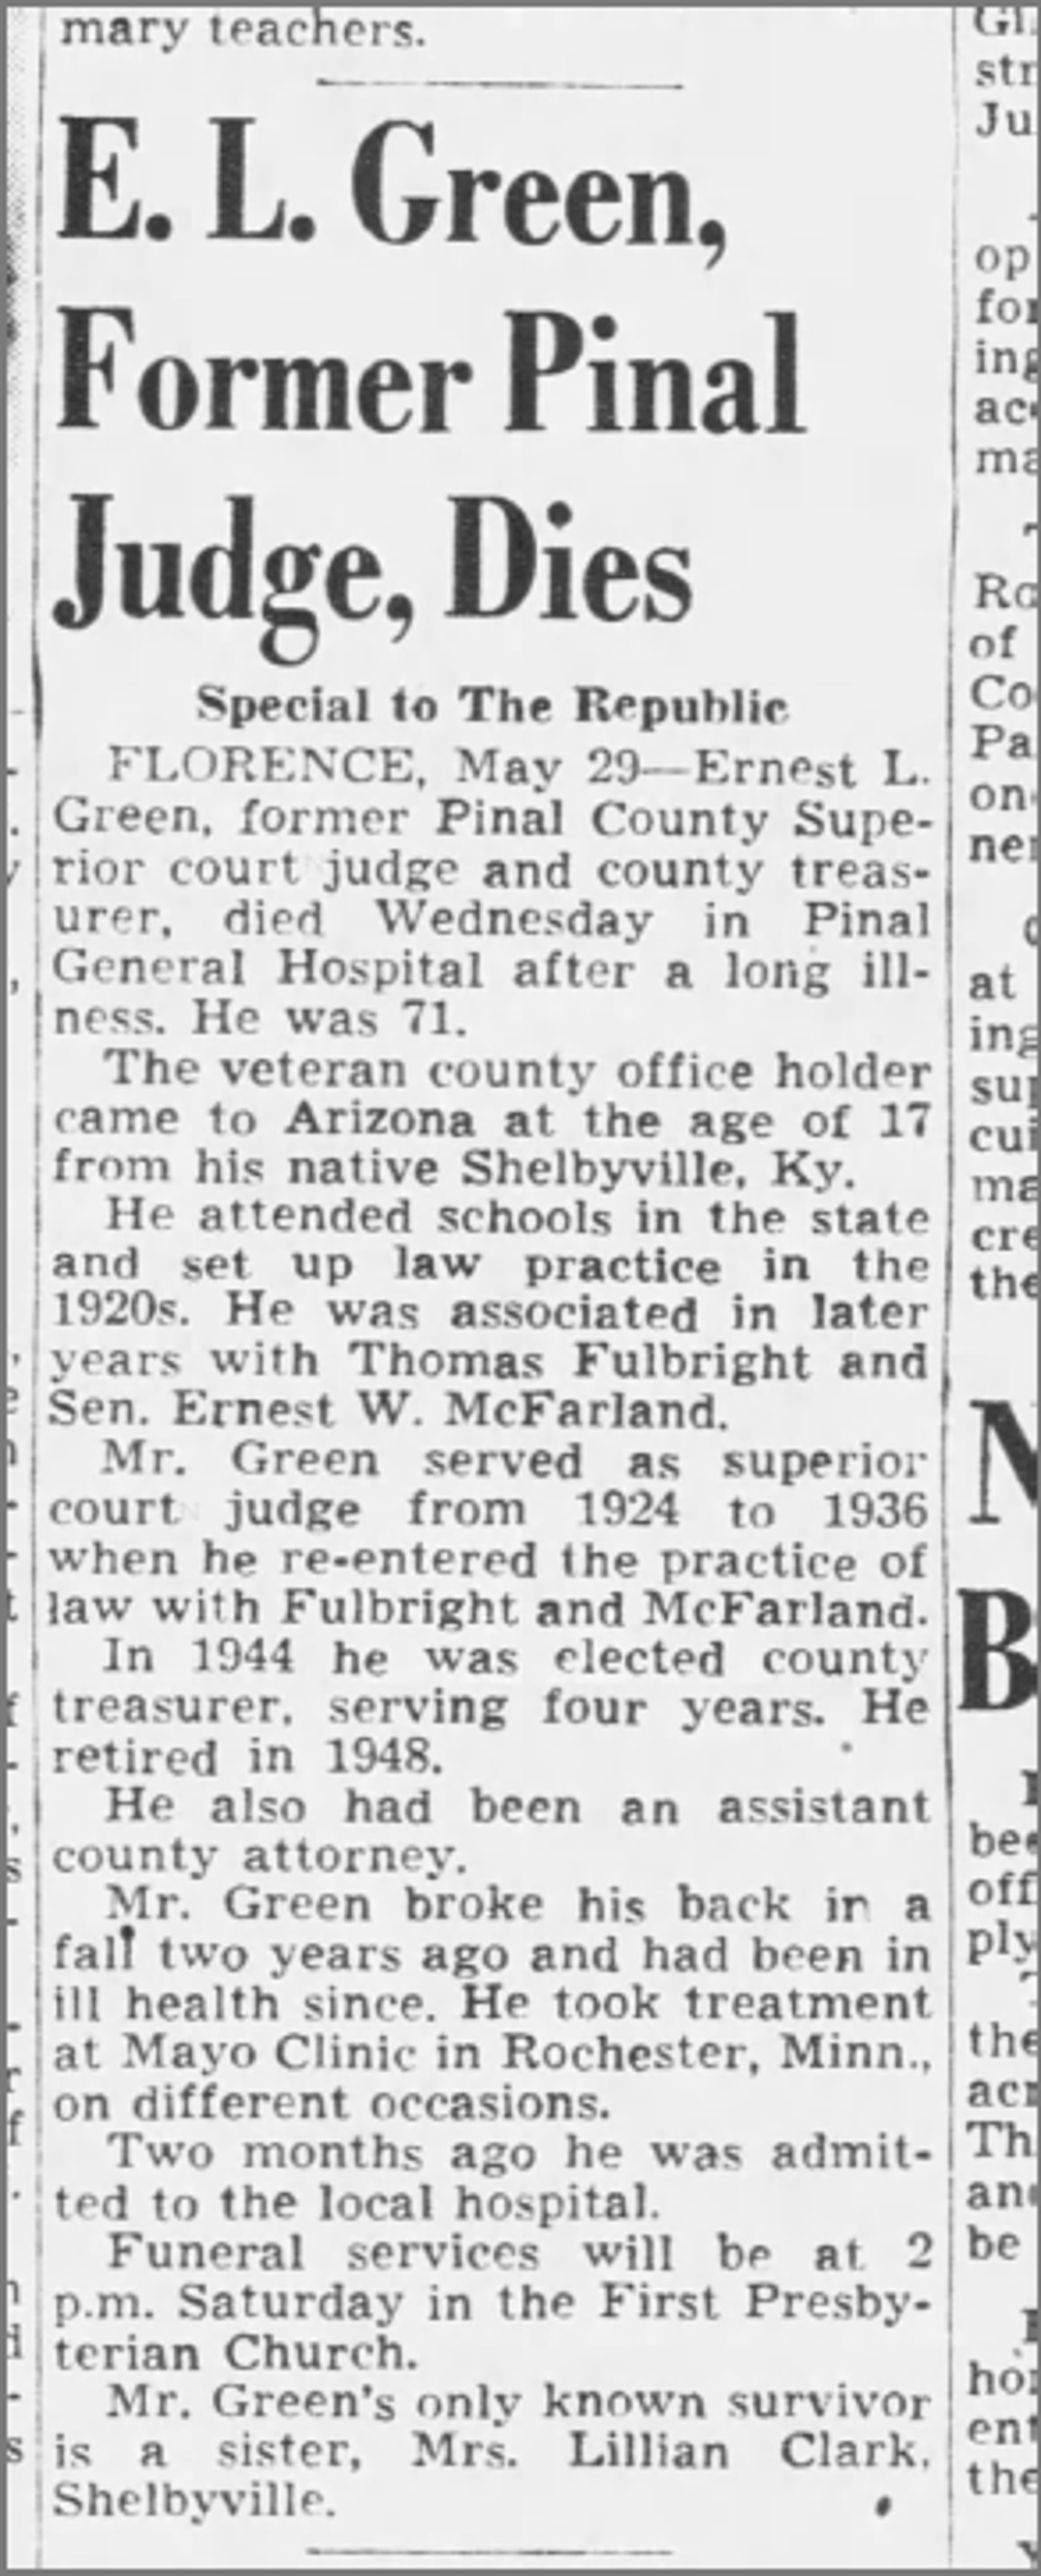 Obituary of E. L. Green, the judge who presided over the Hatbox Baby child abandonment hearing. He died in 1952, as published by The Arizona Republic that year on May 30.